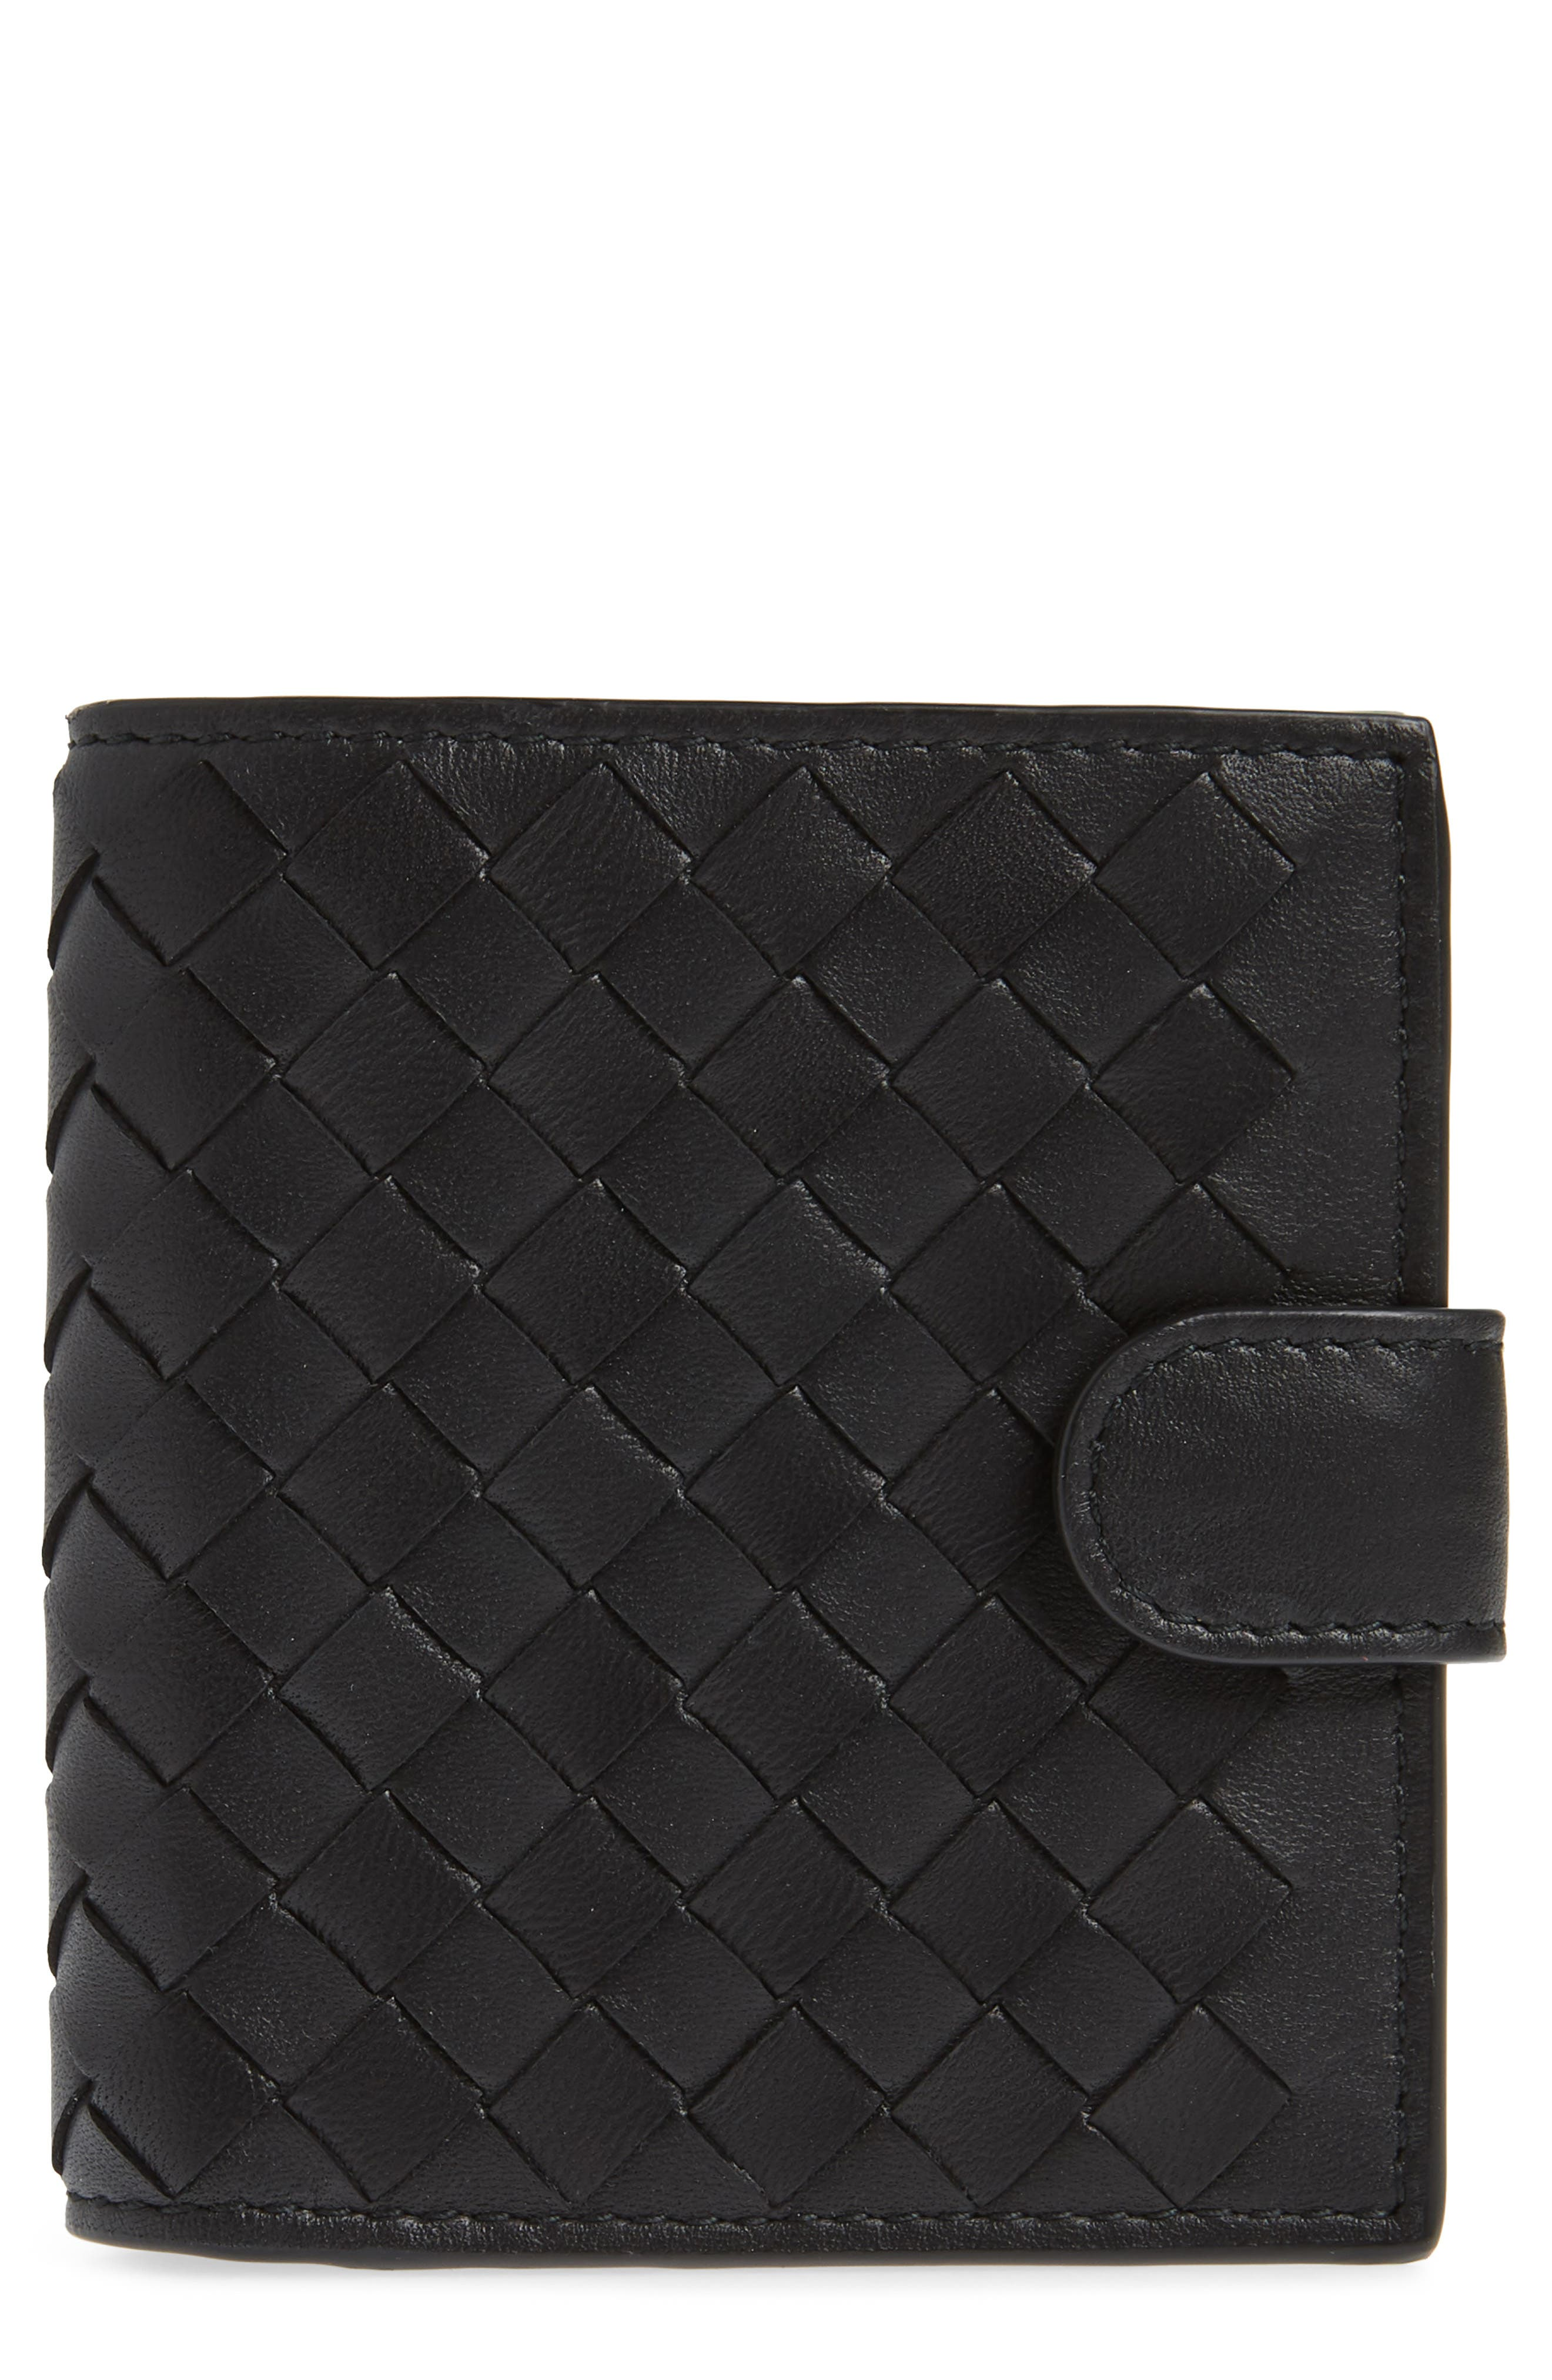 Intrecciato Leather French Wallet,                         Main,                         color, BLACK